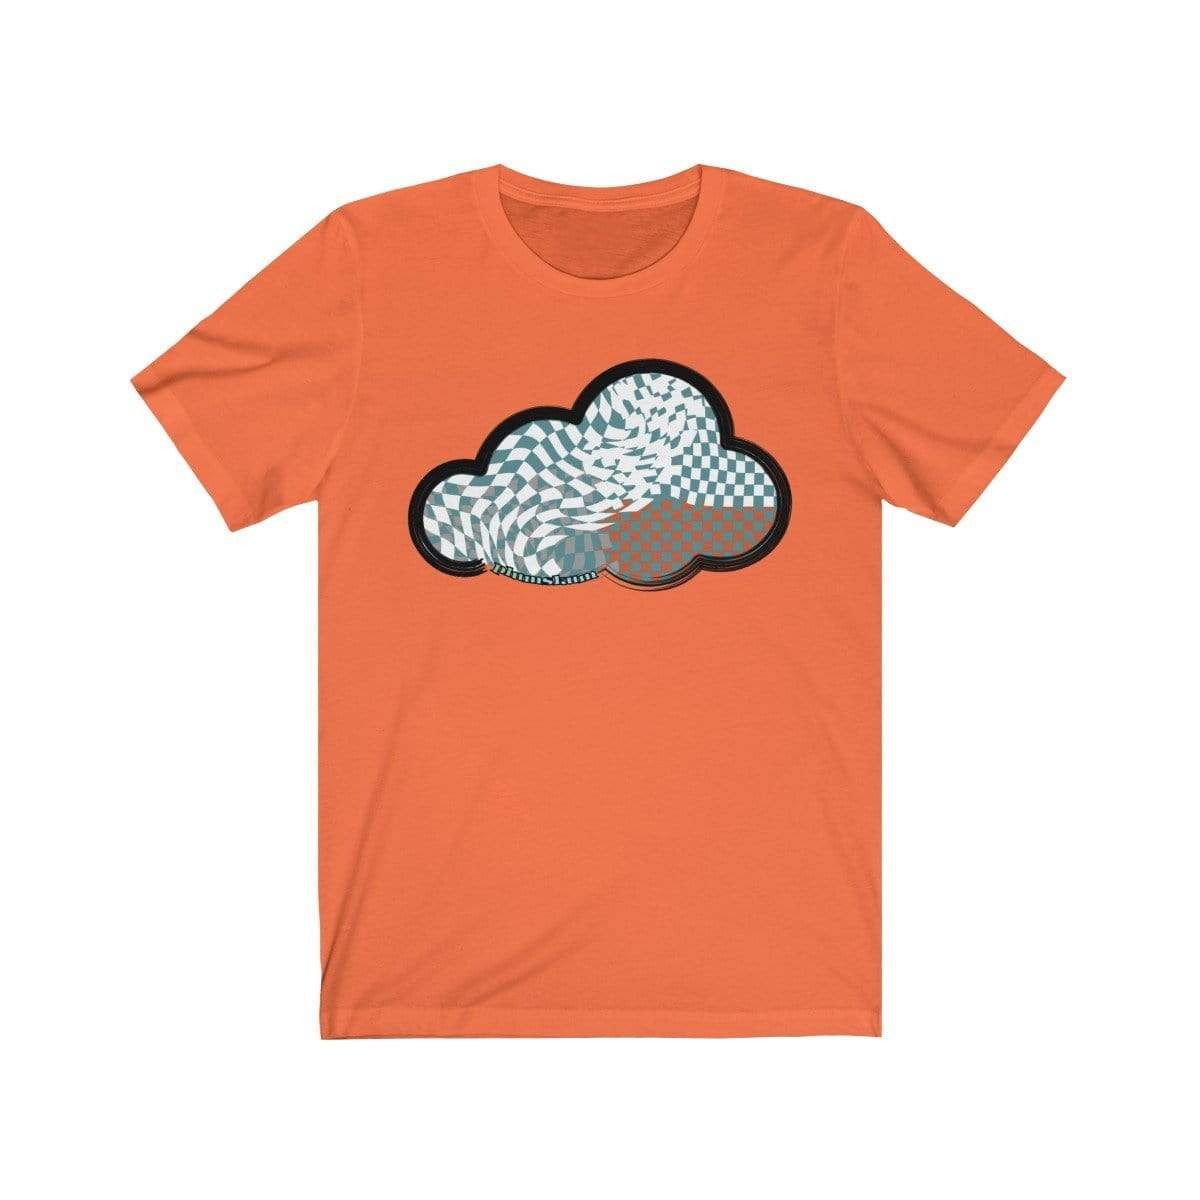 Printify T-Shirt Orange / M Checker Art Clouds T-Shirt